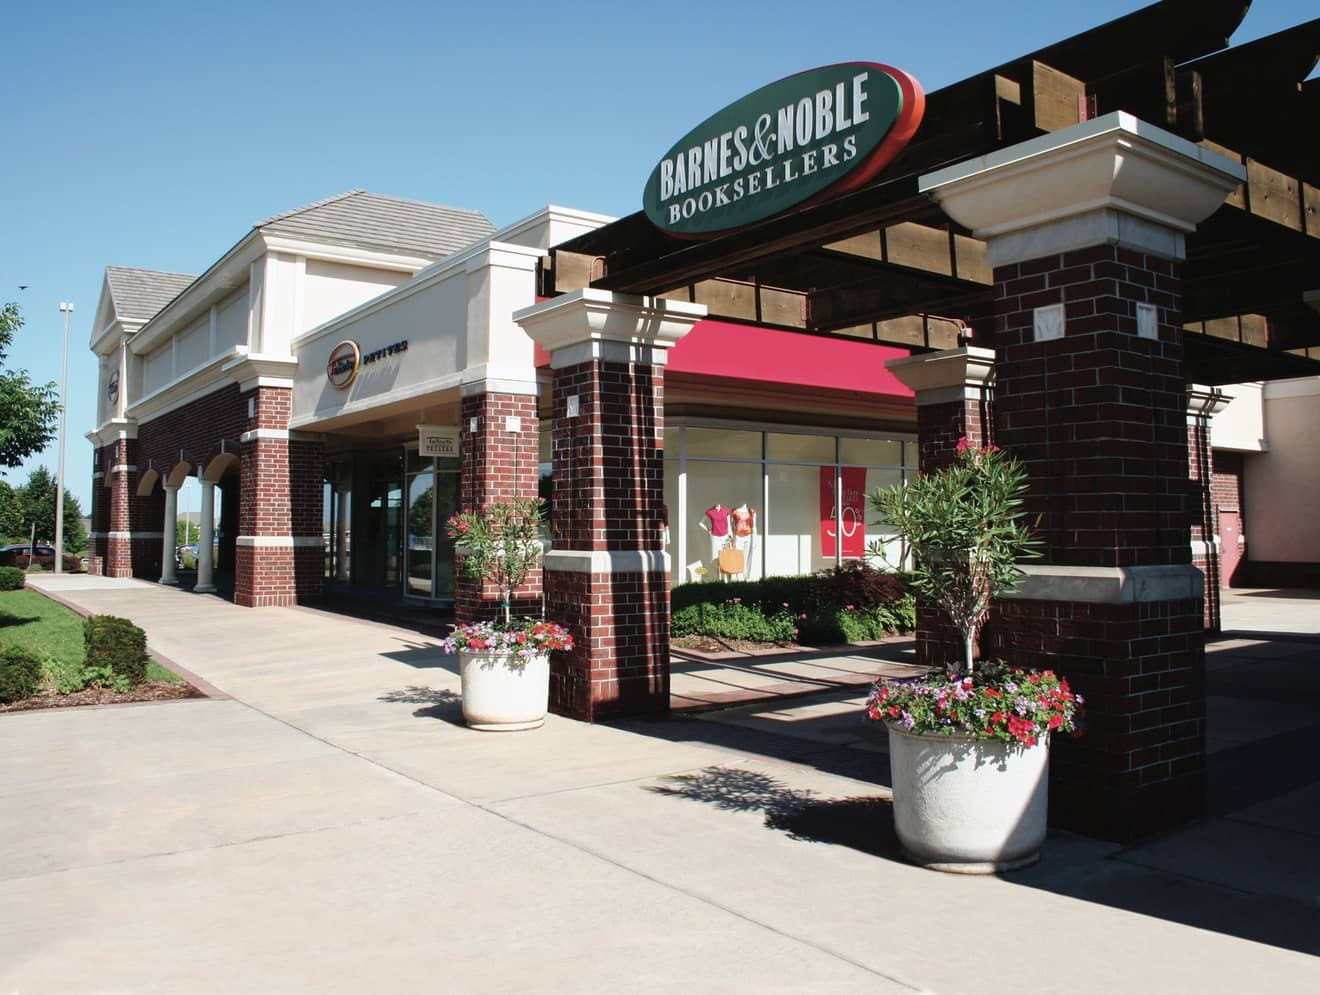 Southpointe Pavilions Big Shopping Centers Usa